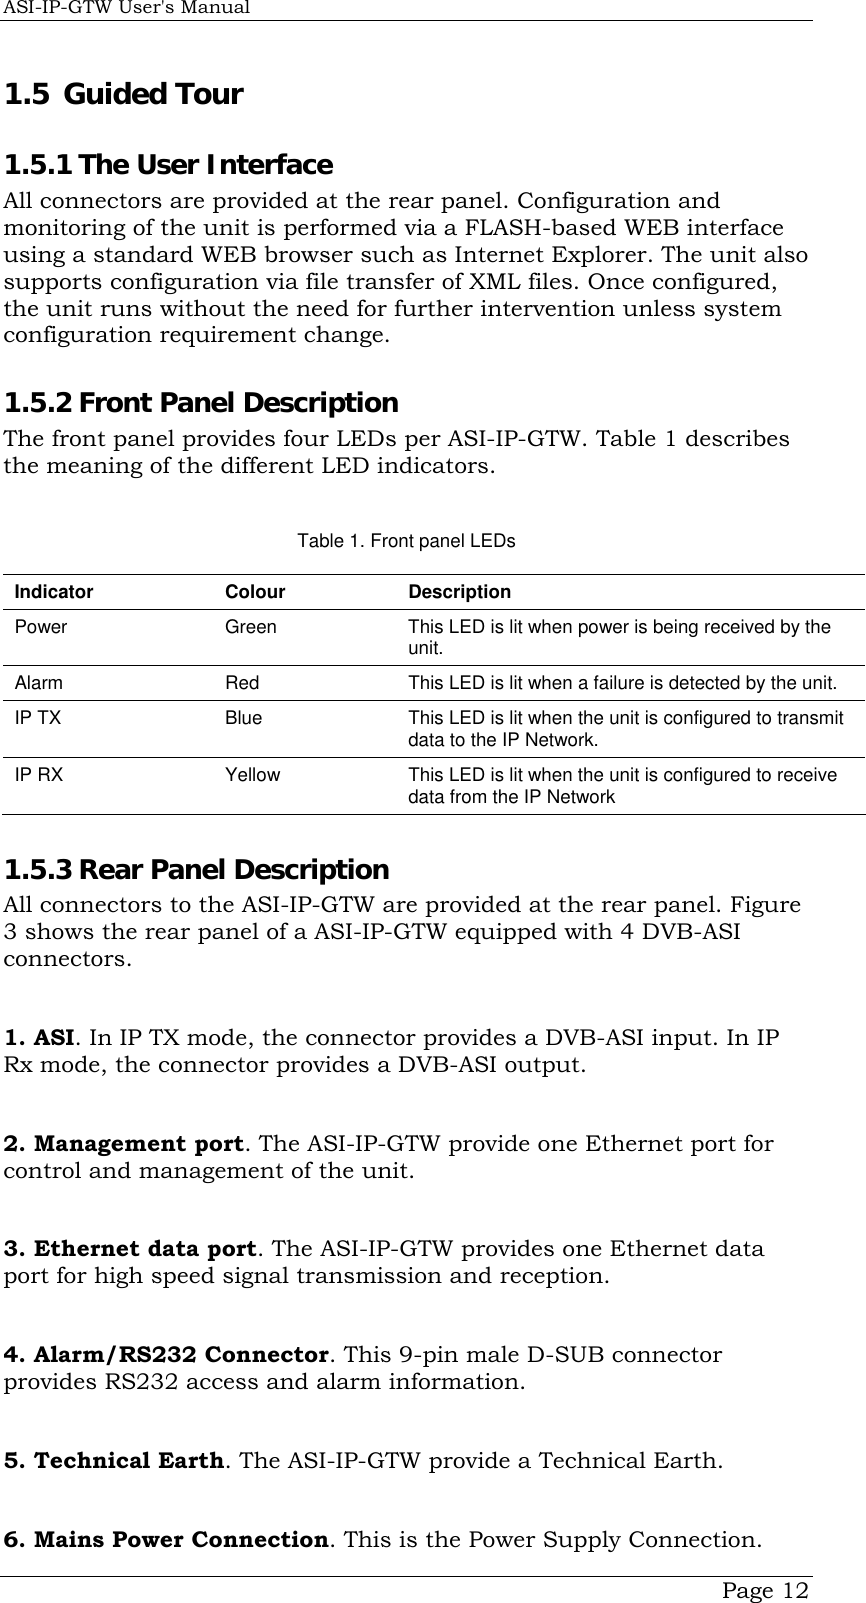 Network Technologies Asi Ip Gtw Users Manual TVG420 User 2 2 (SW